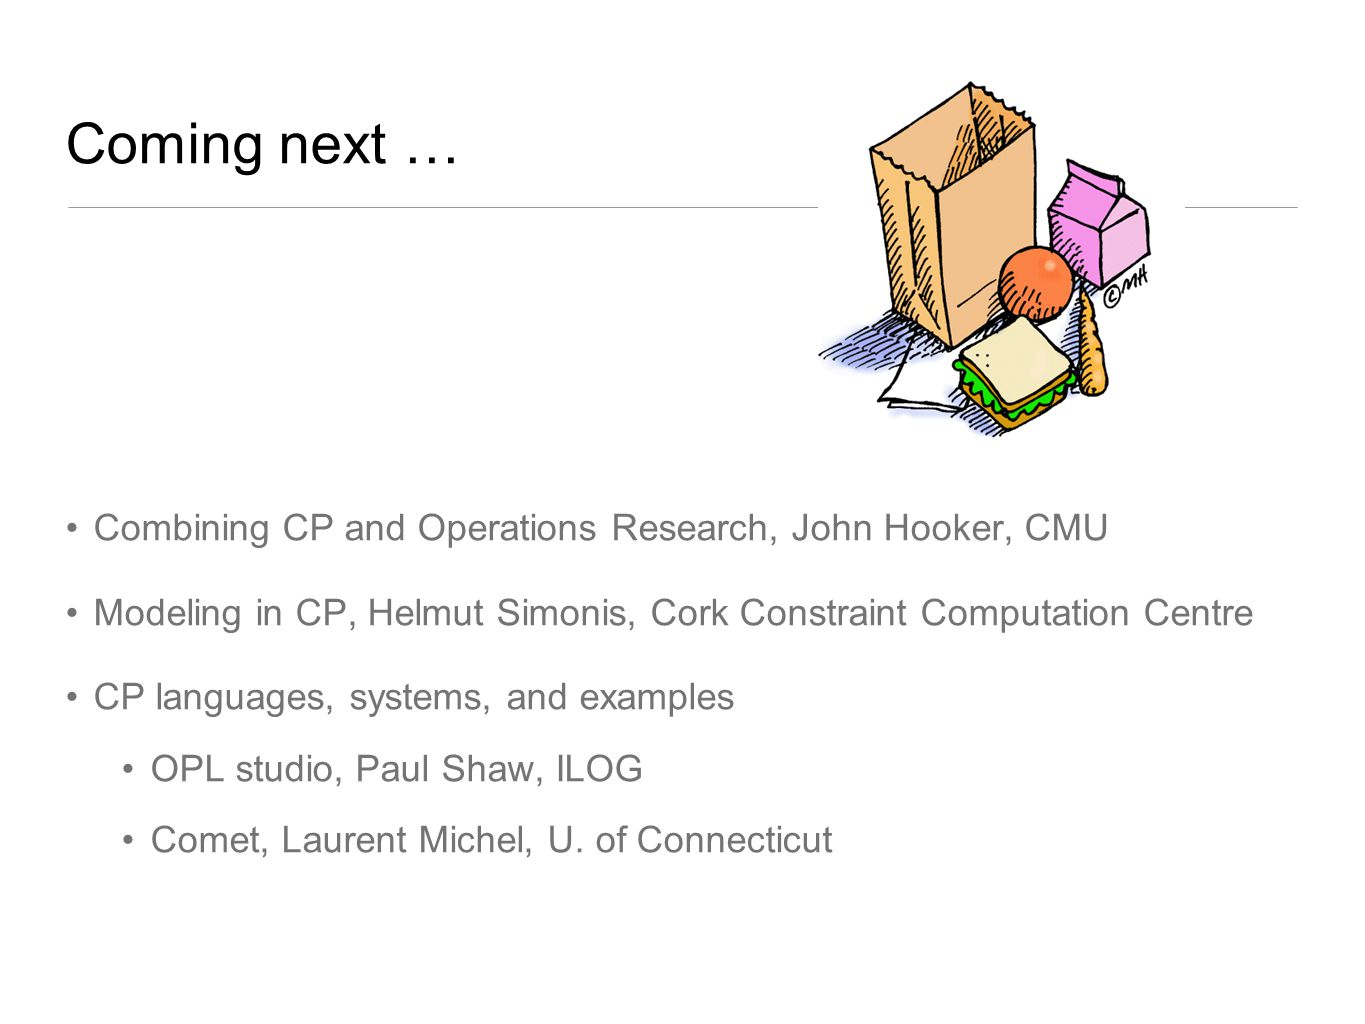 Coming next … Combining CP and Operations Research, John Hooker, CMU